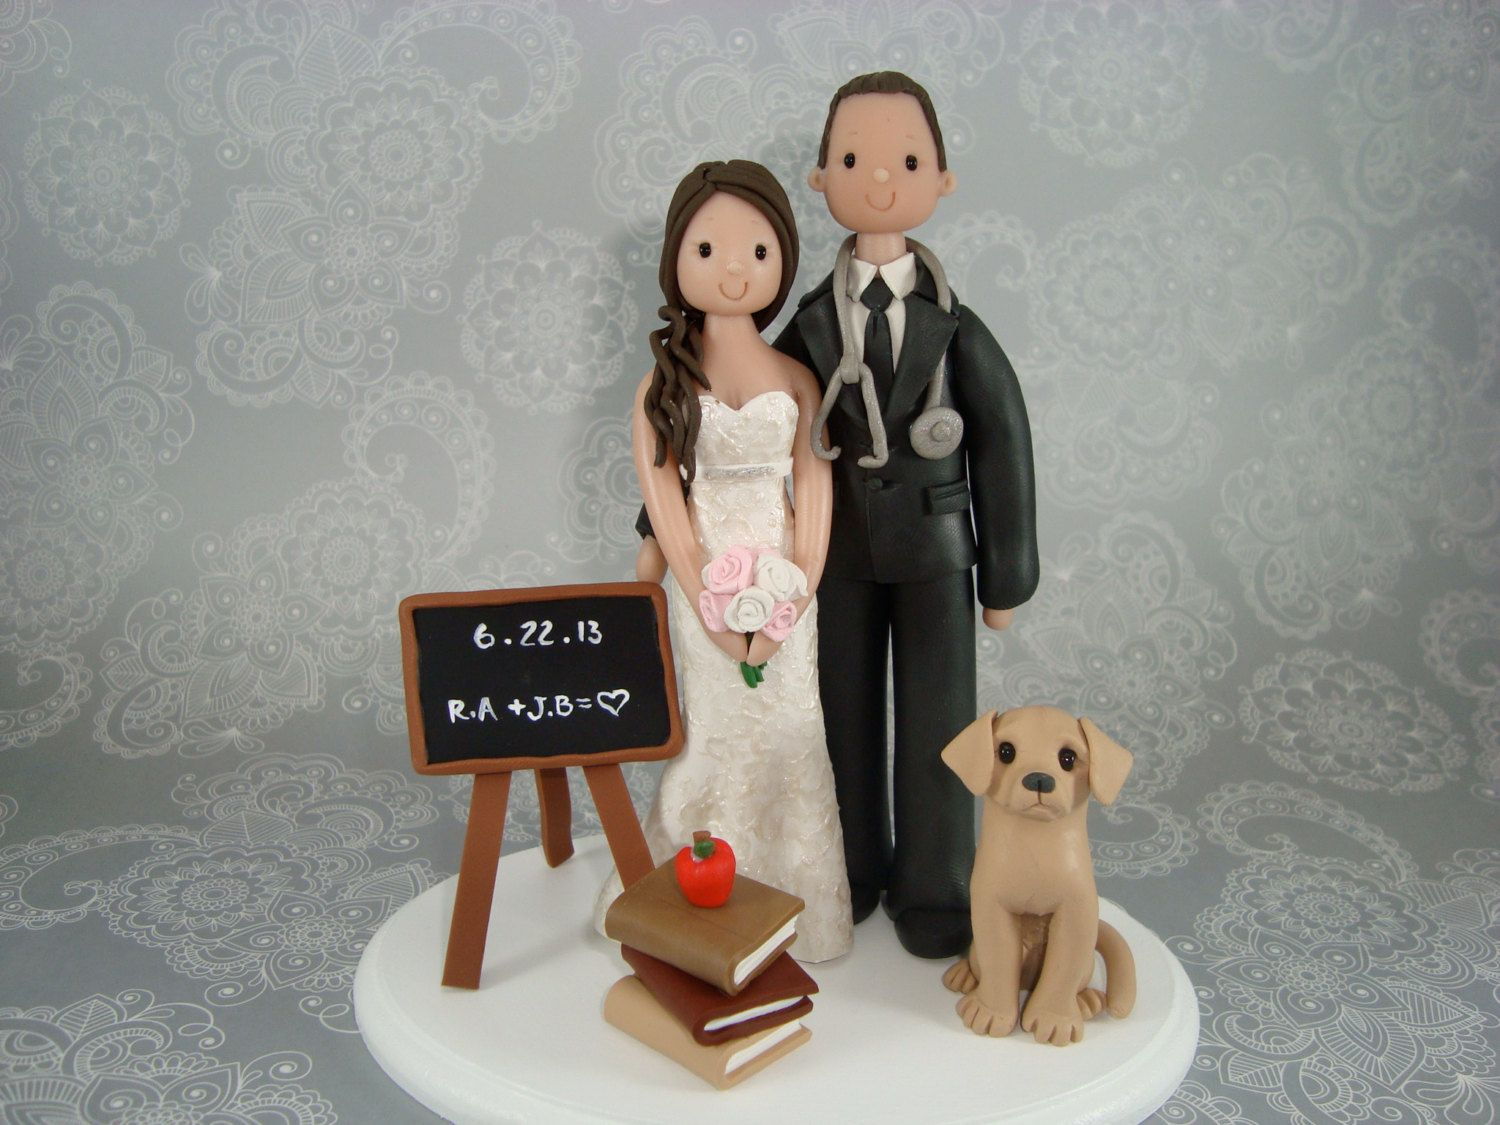 Doctor Teacher Customized Wedding Cake Topper By Mudcards 145 00